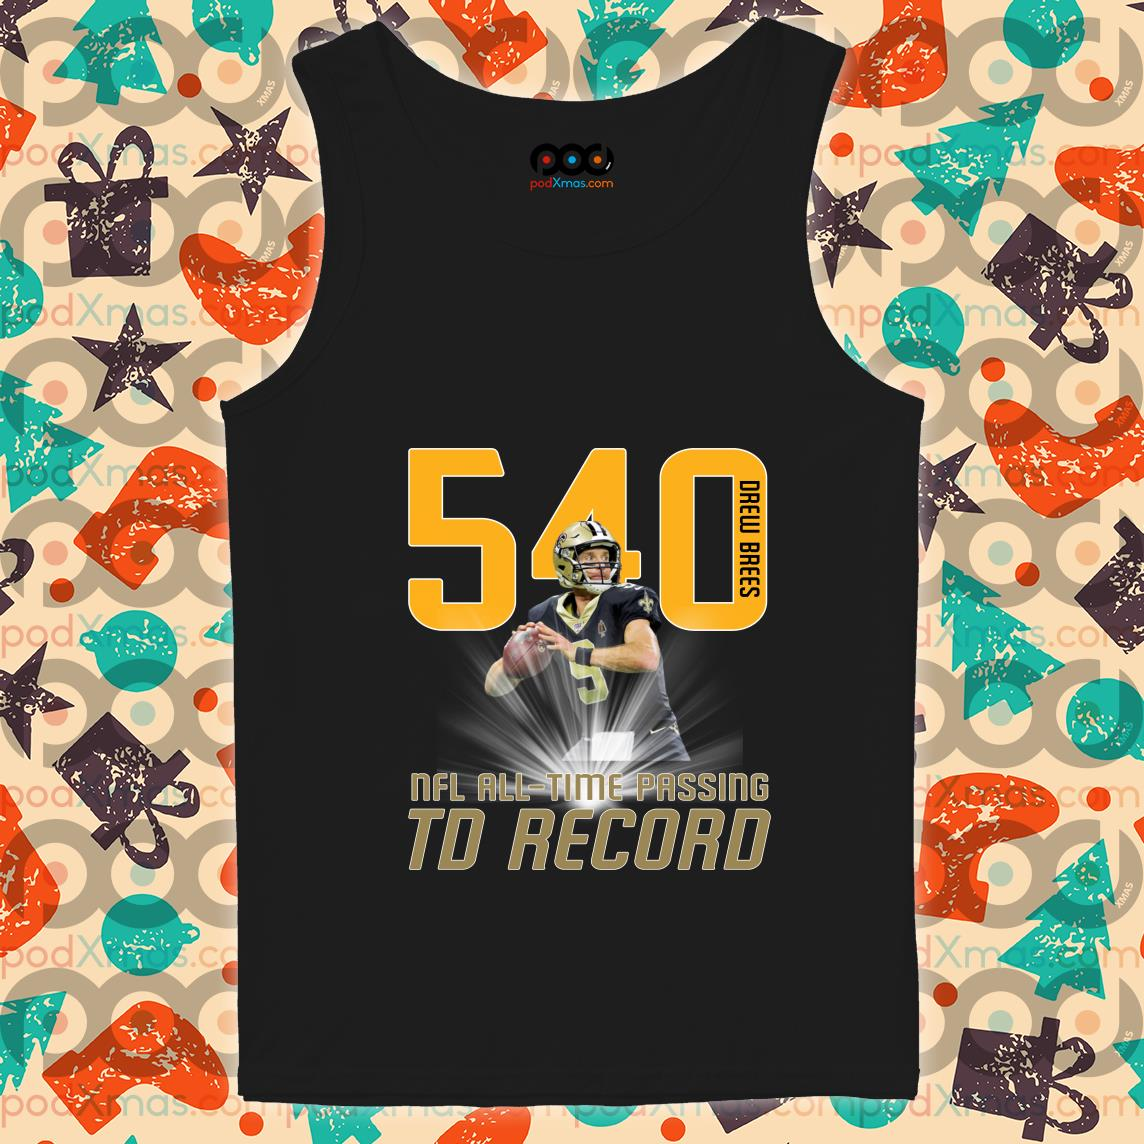 Drew Brees 540 NFL ALL-TIME PASSING TD record tank top